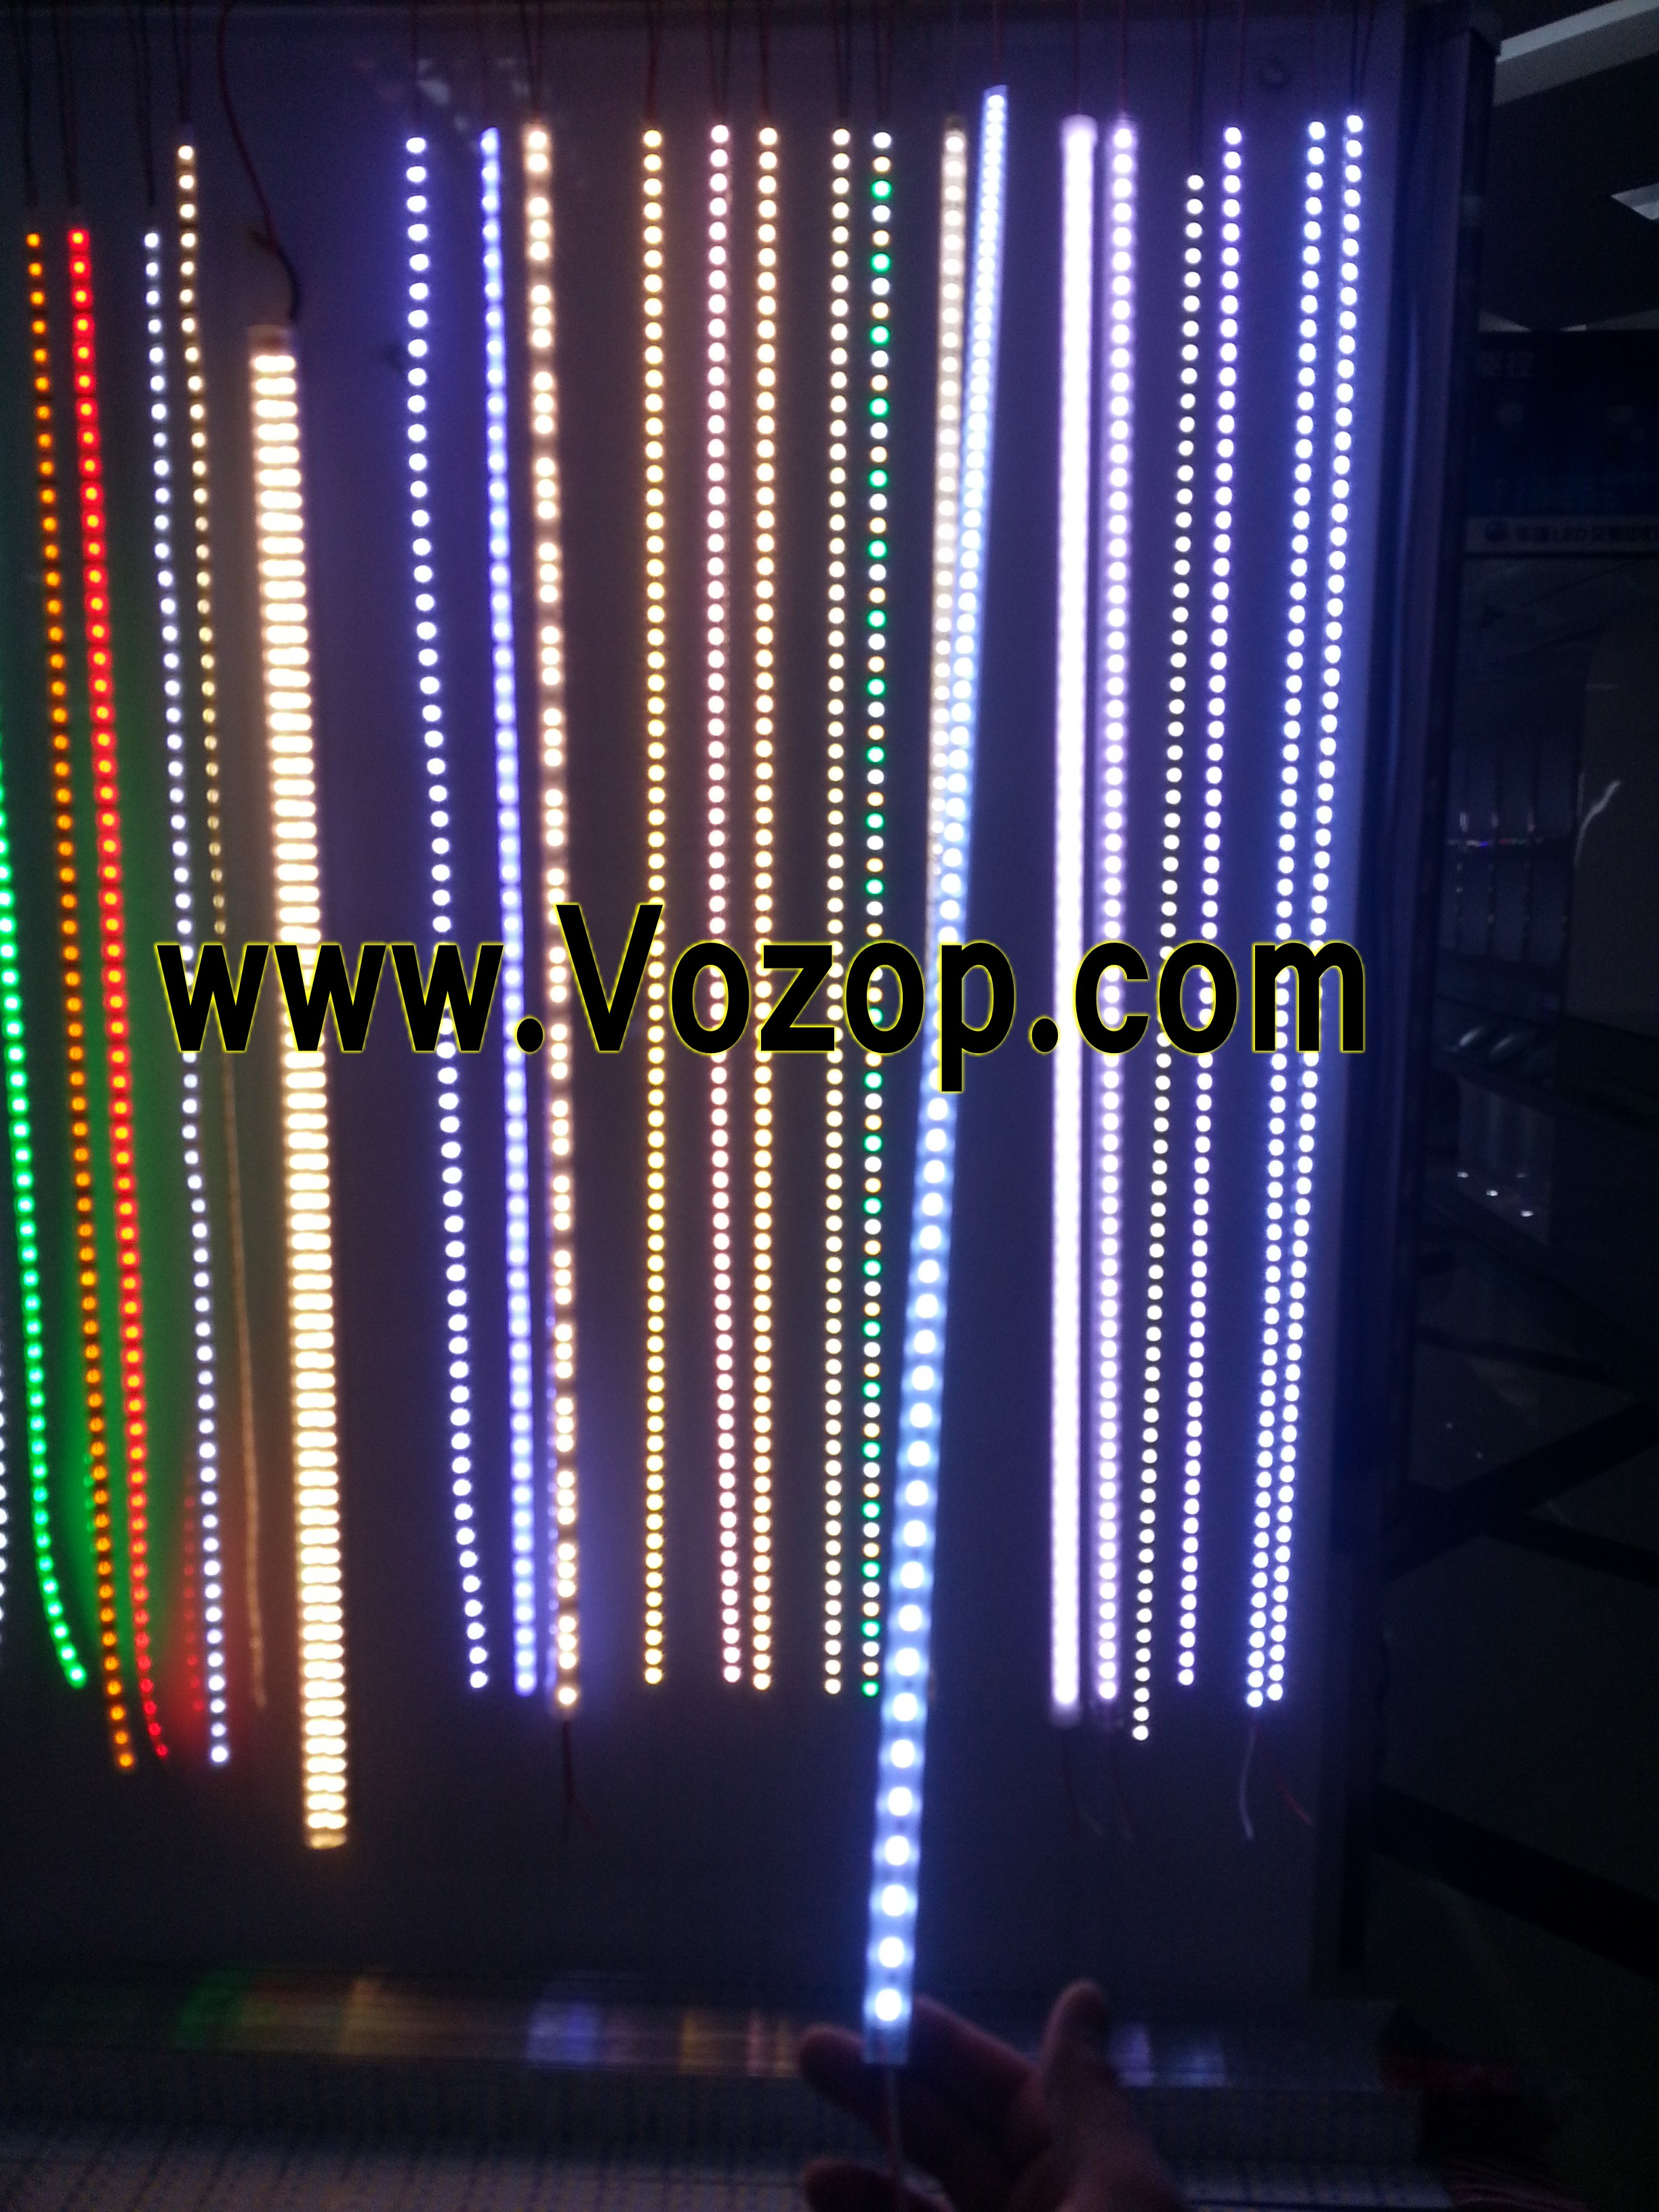 Micro aluminum channels covers for 10mm and 12mm led light strip ledlightminialuminumchanneltransparentcoverforledstrips microaluminumchannelbarforledstripslight aloadofball Image collections